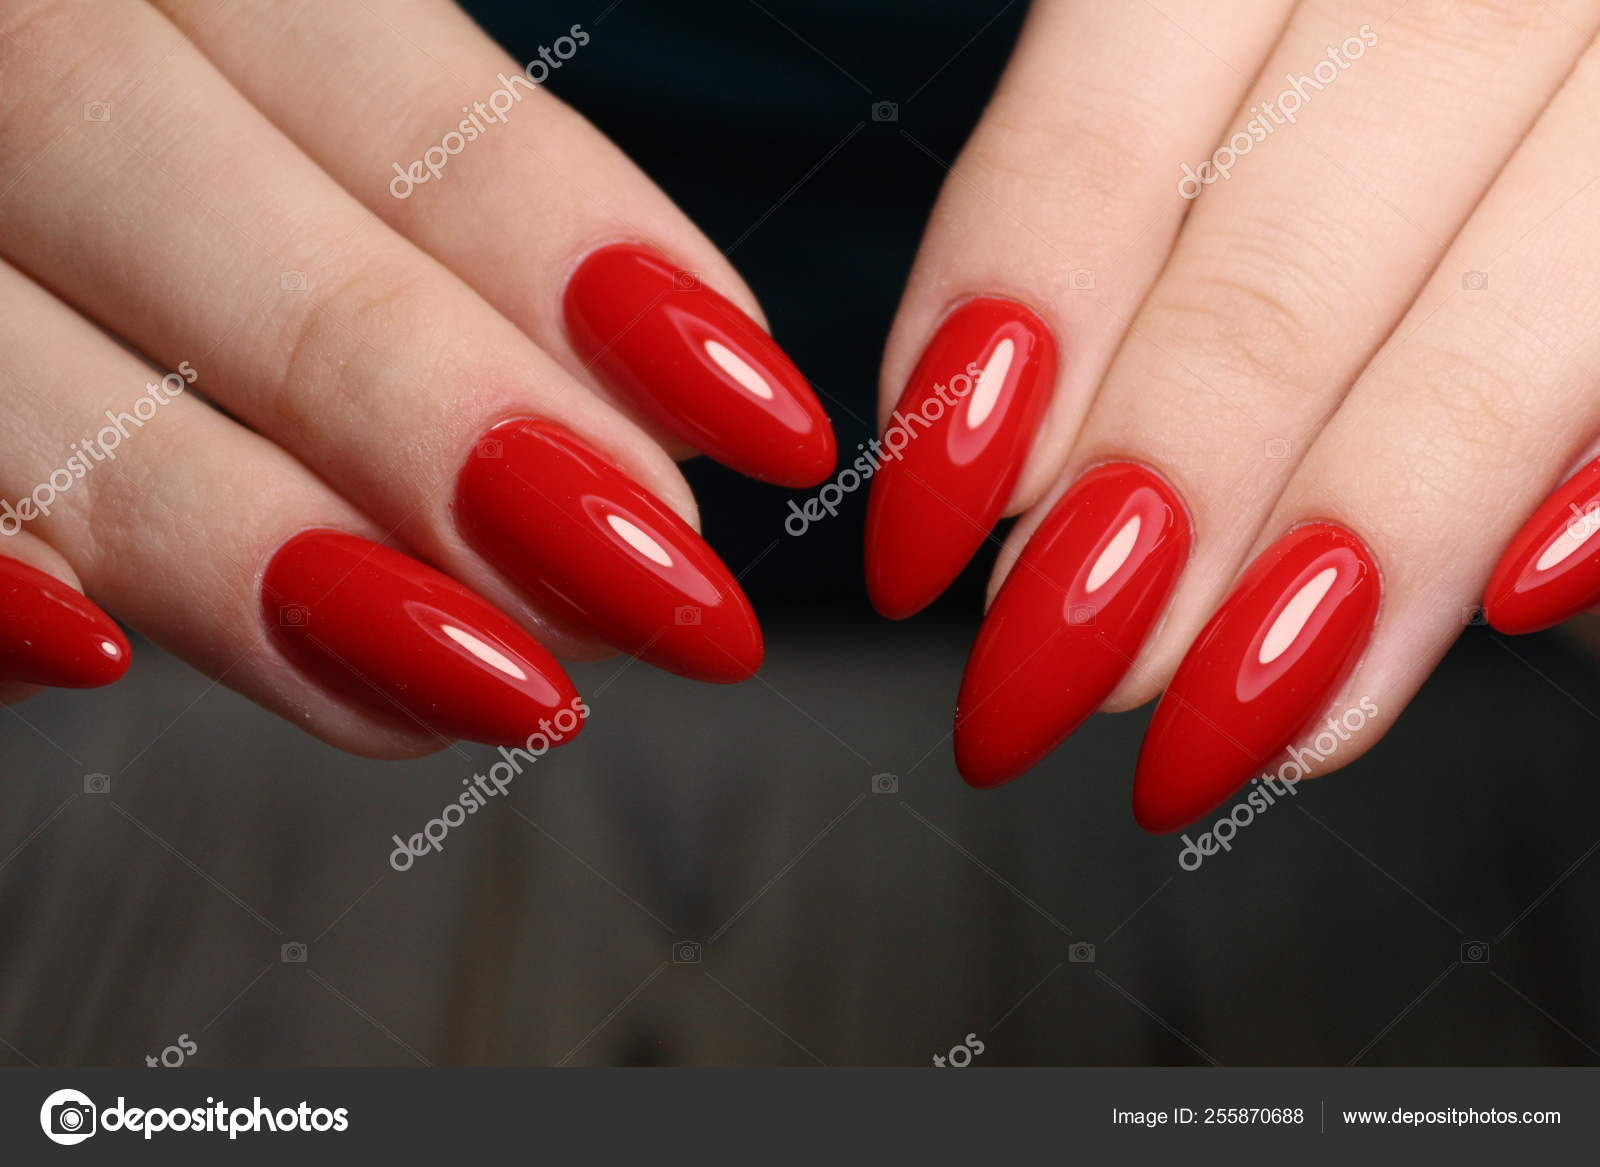 Unhas Manicure Prego Design De Arte Polonês Stock Photo Smirmaxstock 255870688